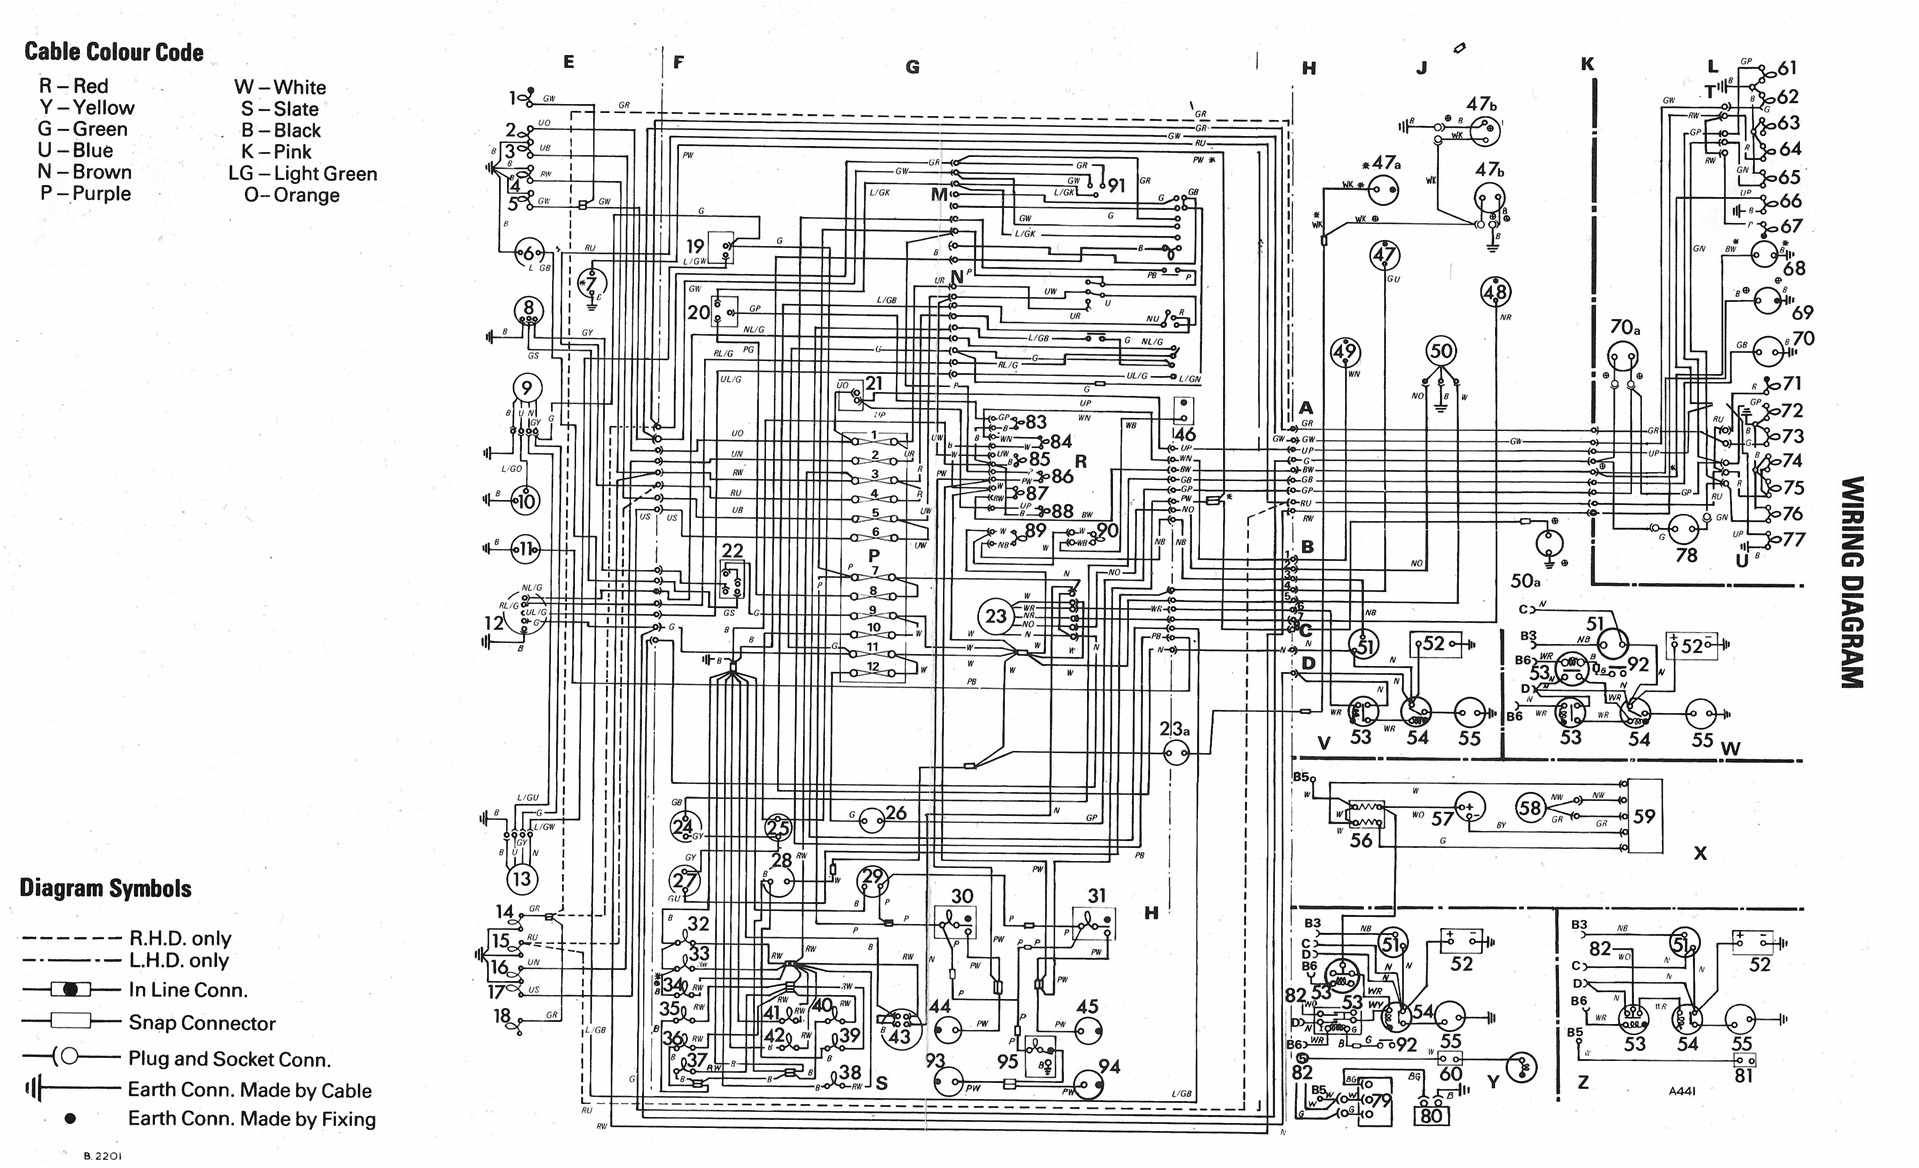 Electrical Wiring Diagram Of Volkswagen Golf Mk1 | Projekt ... on